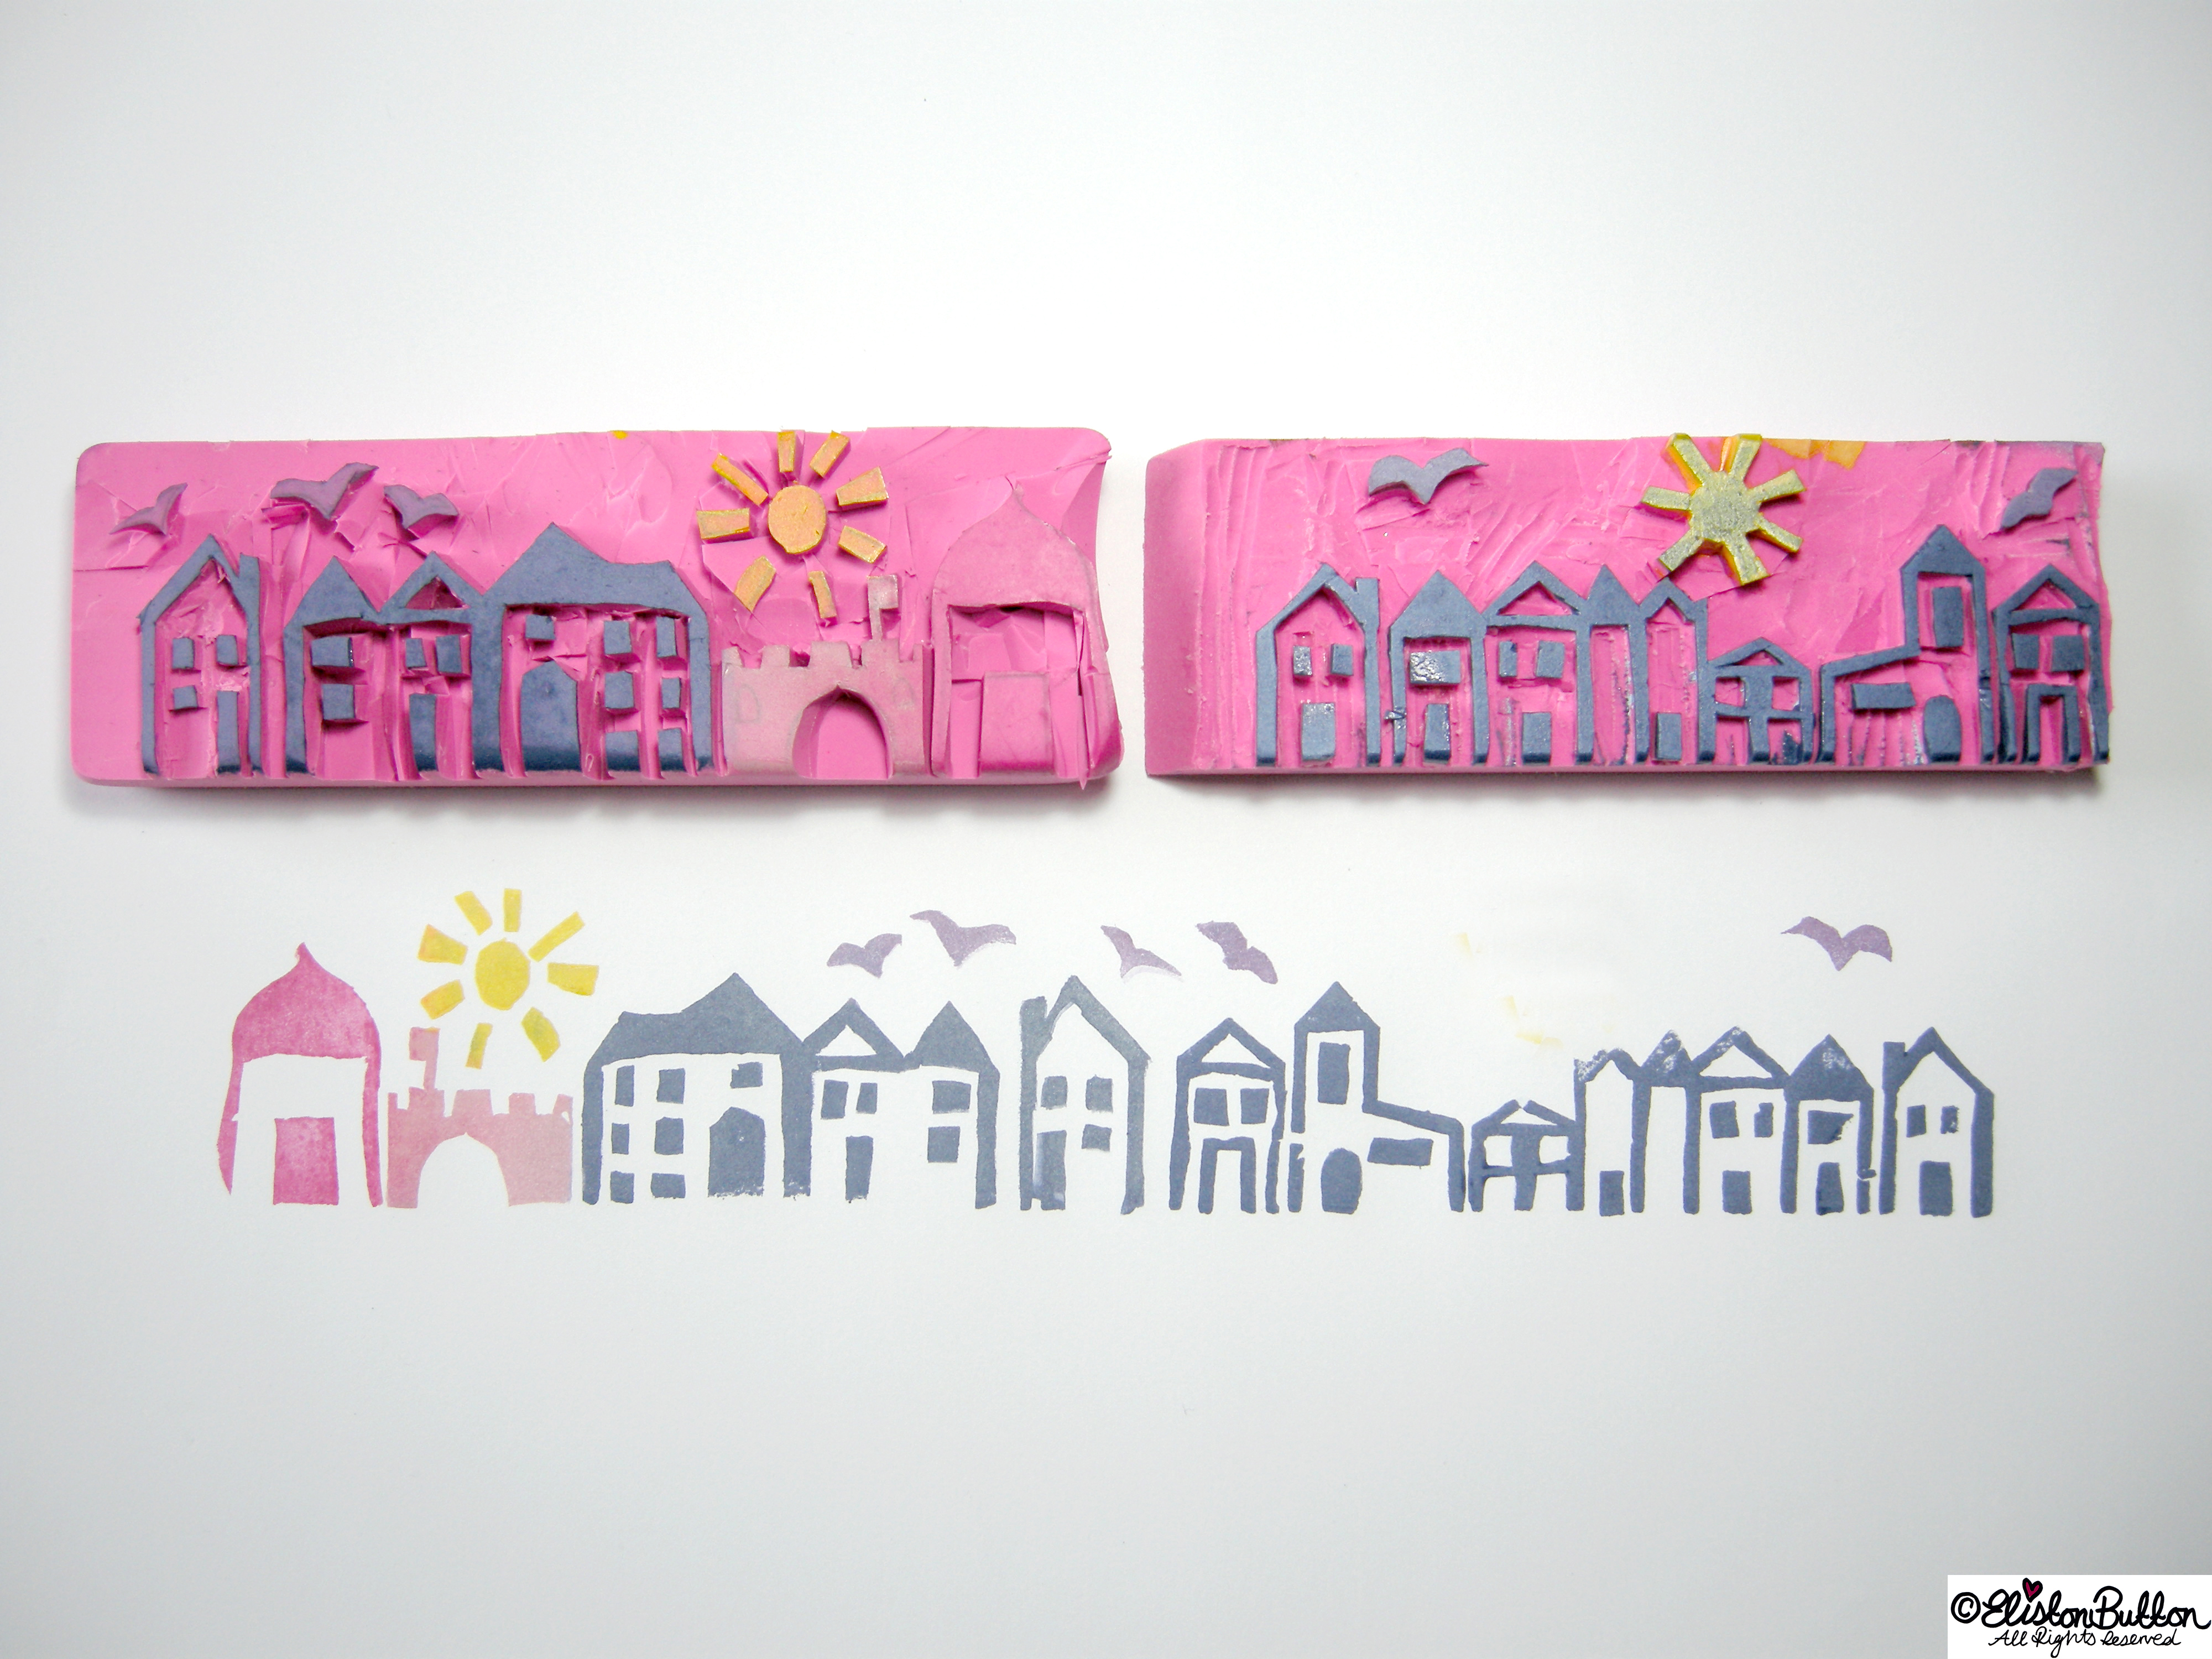 Hand Carved Streetscape Stamps with Inky Prints - Hand-Carved Streetscape Stamps at www.elistonbutton.com - Eliston Button - That Crafty Kid – Art, Design, Craft & Adventure.